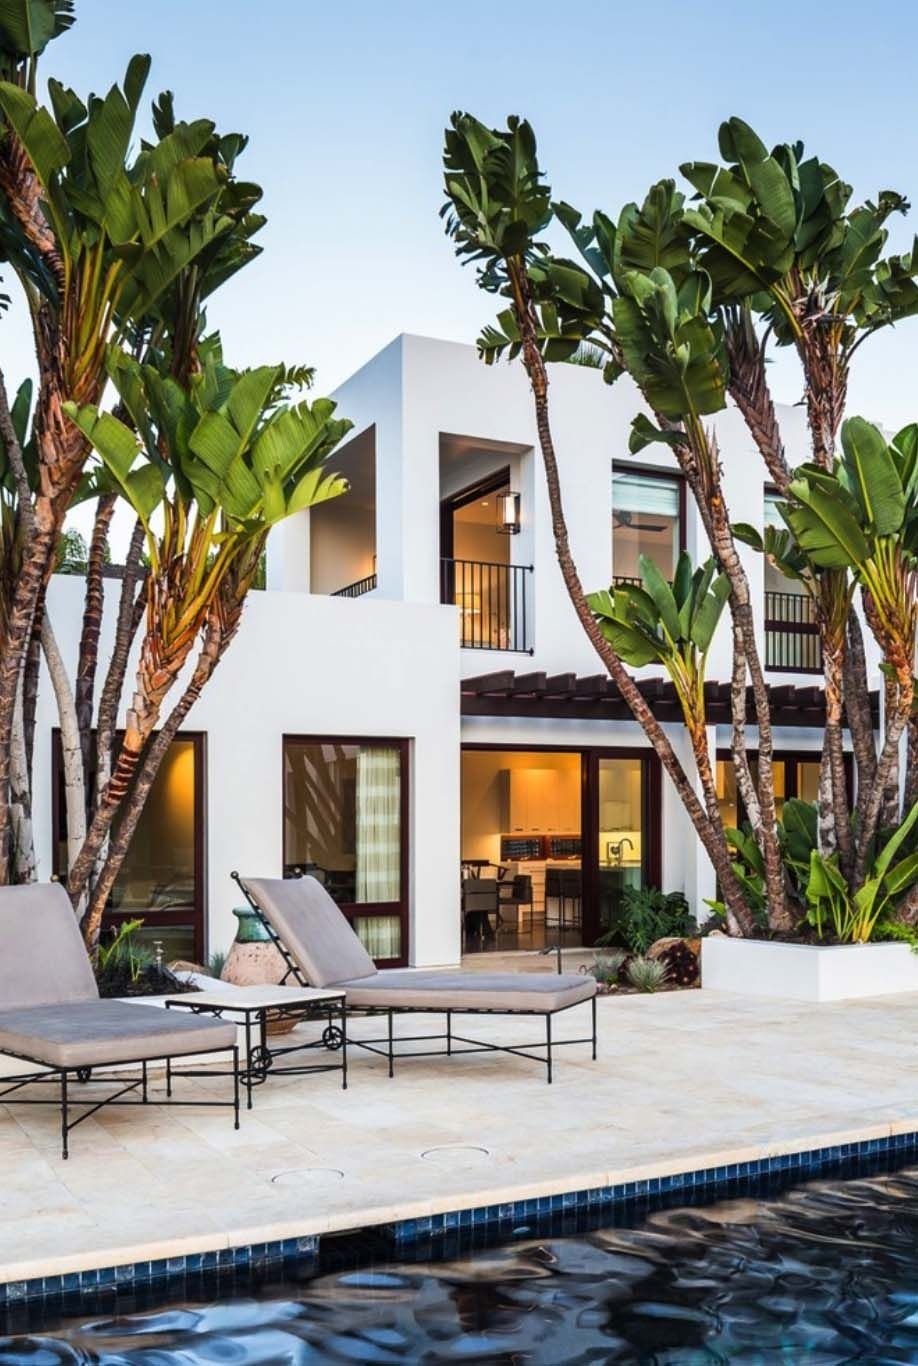 Beachfront Luxury Modern Home Exterior At Night: Family Compound Designed For Entertaining On The California Coast